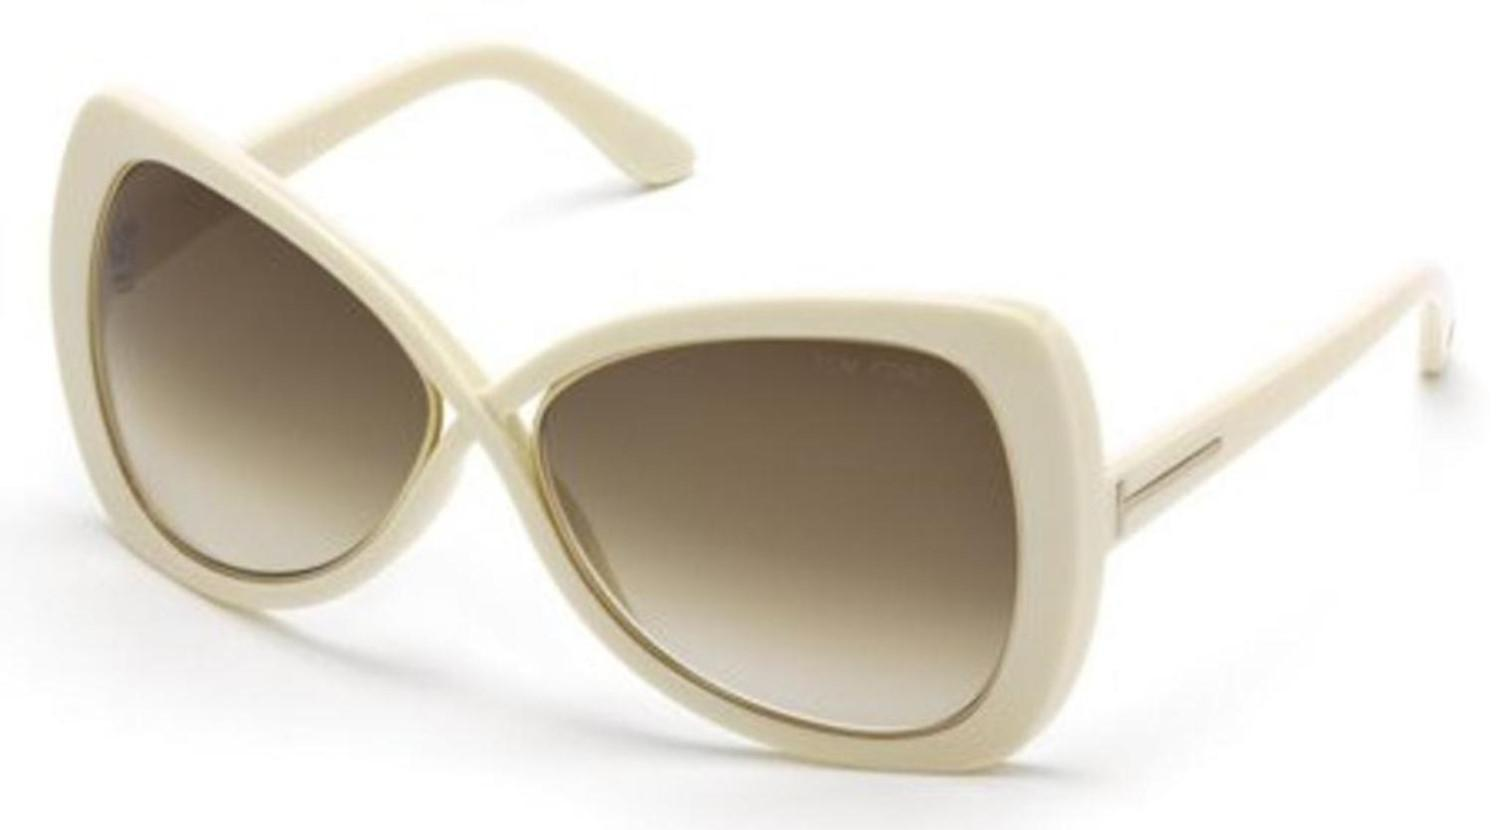 144c7603165e1 Lyst - Tom Ford Ft0277 Jade Sunglasses Ivory   Gradient Brown